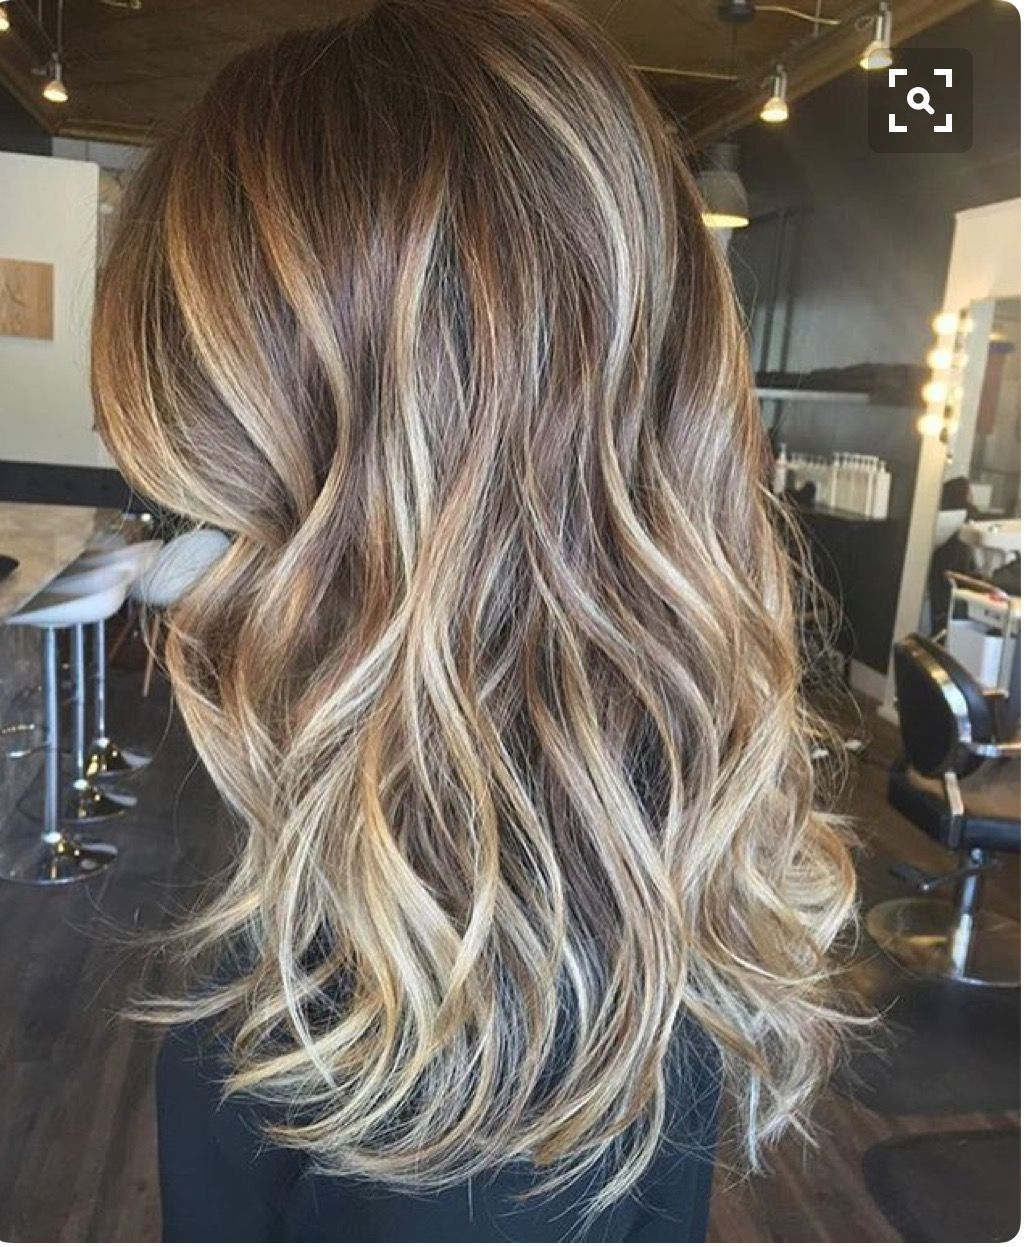 Pin by ester marchan on hair pinterest hair coloring makeup and